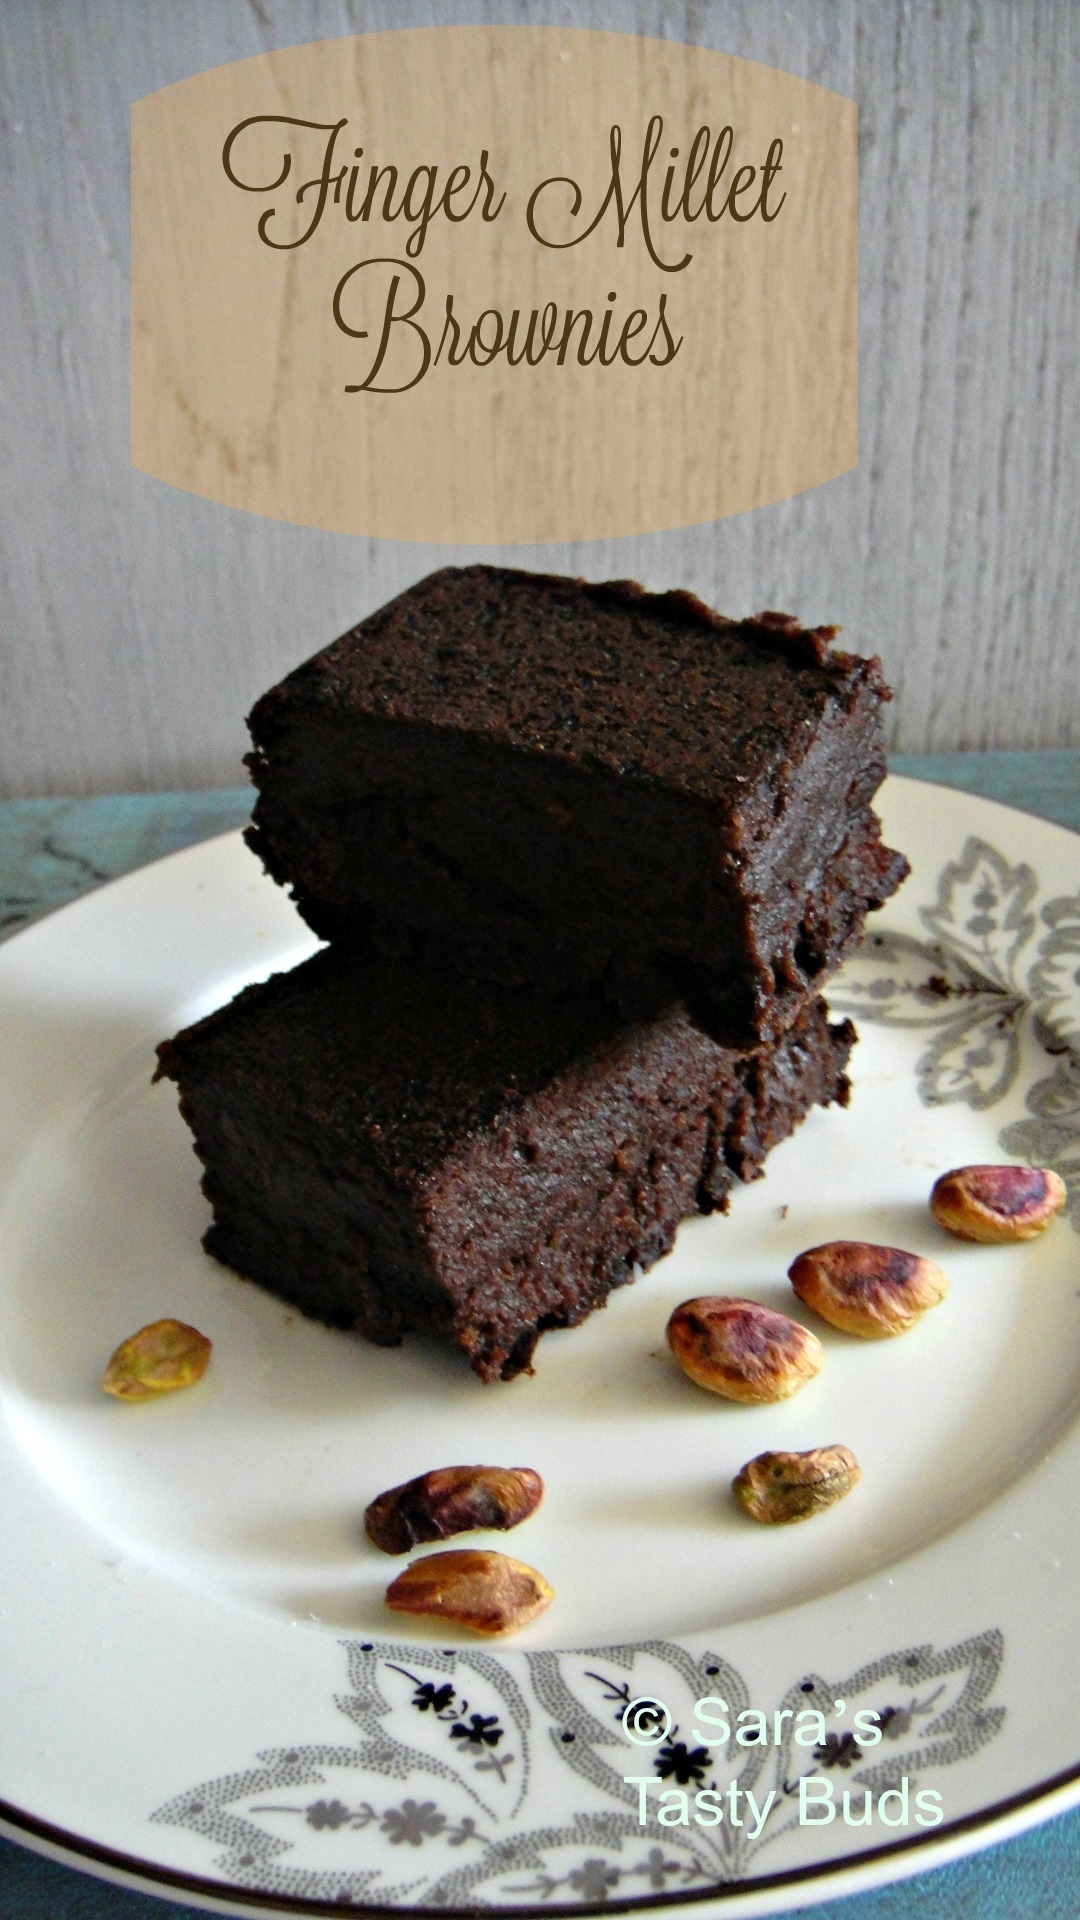 Fingermillet Brownies with sugarfree Natura - Eggless and Diabetic Friendly